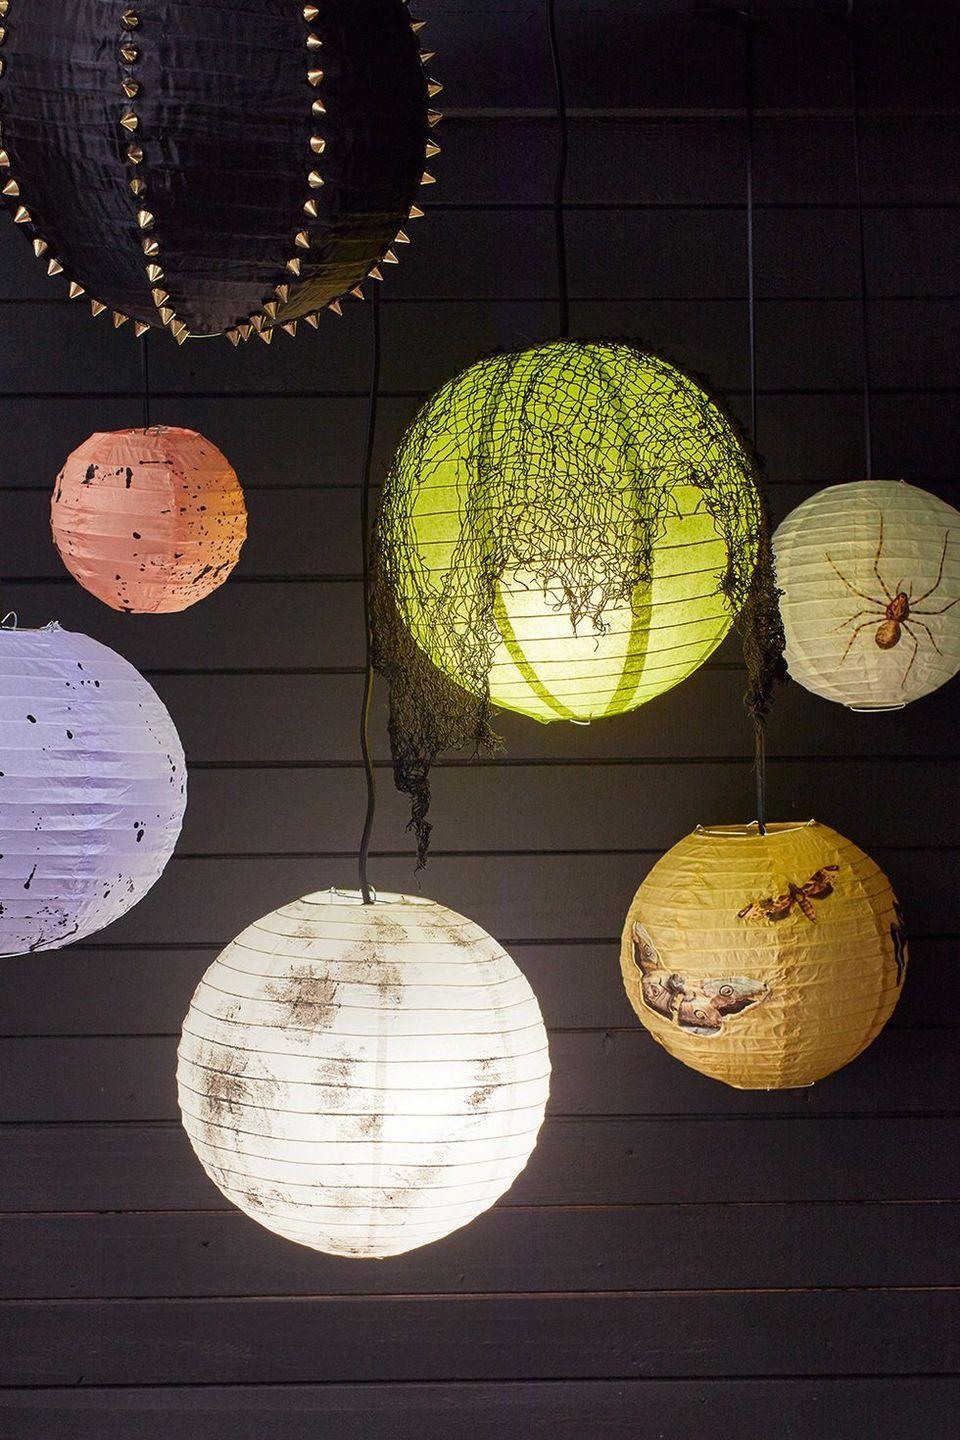 """<p>Upgrade basic paper lanterns with paint, gauze, studs and clip art from an eerie look. </p><p><a href=""""https://www.goodhousekeeping.com/home/craft-ideas/a34329004/diy-halloween-lantern-tutorial/"""" rel=""""nofollow noopener"""" target=""""_blank"""" data-ylk=""""slk:Get the tutorial >>"""" class=""""link rapid-noclick-resp""""><em>Get the tutorial >></em></a></p>"""